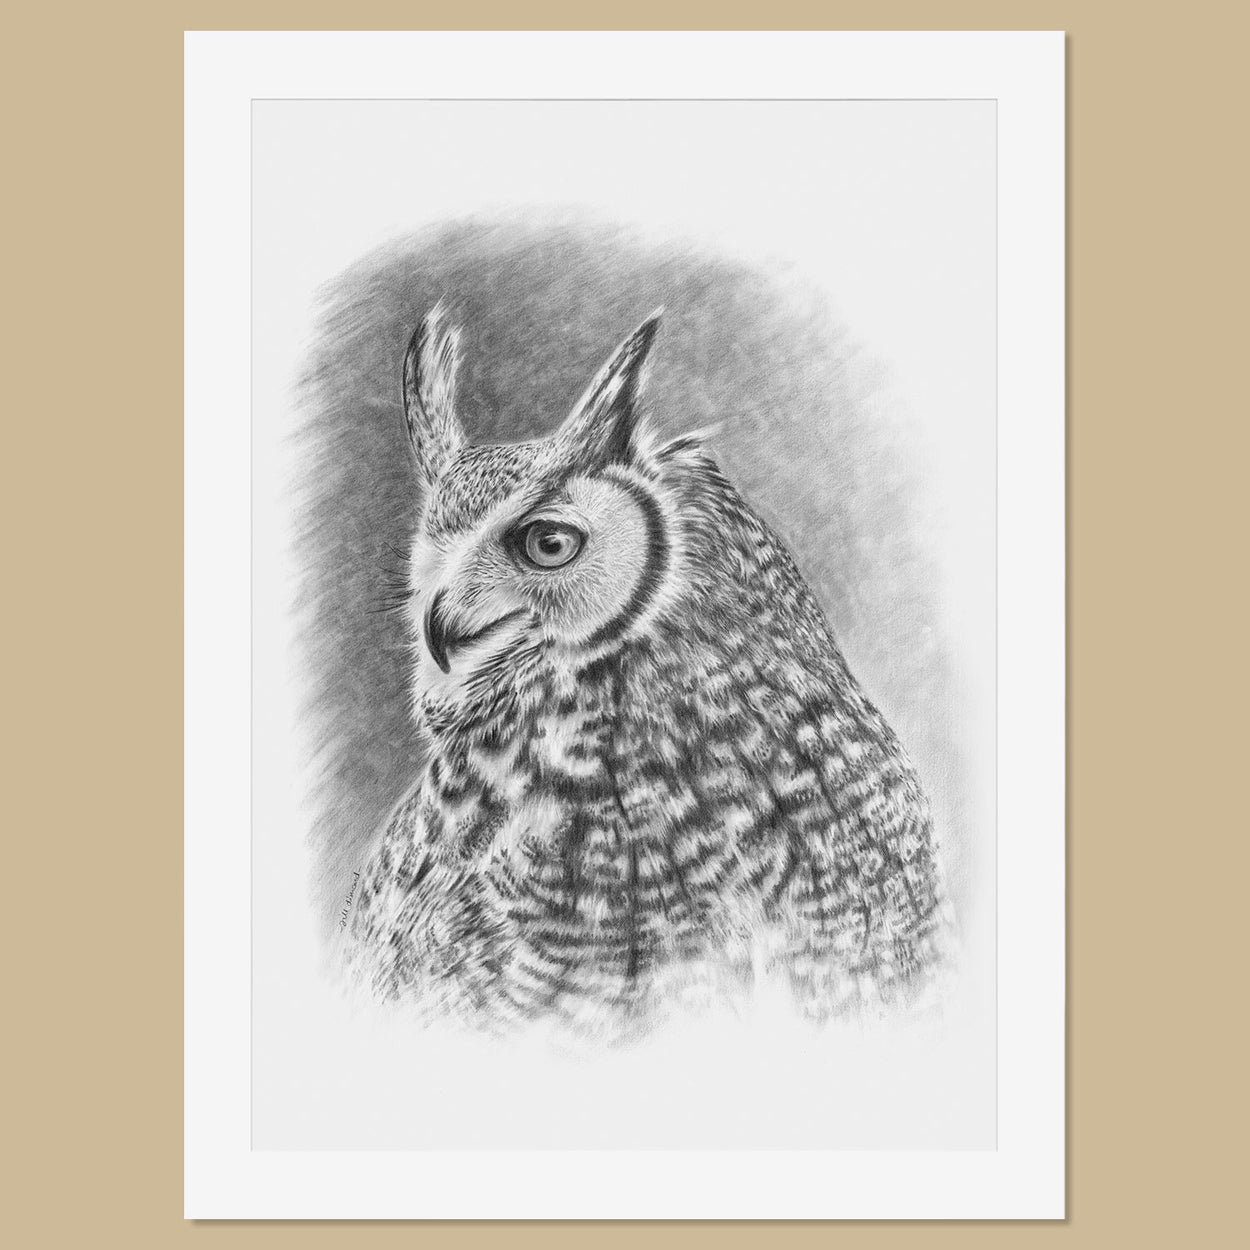 Original Great Horned Owl Pencil Drawing - The Thriving Wild - Jill Dimond